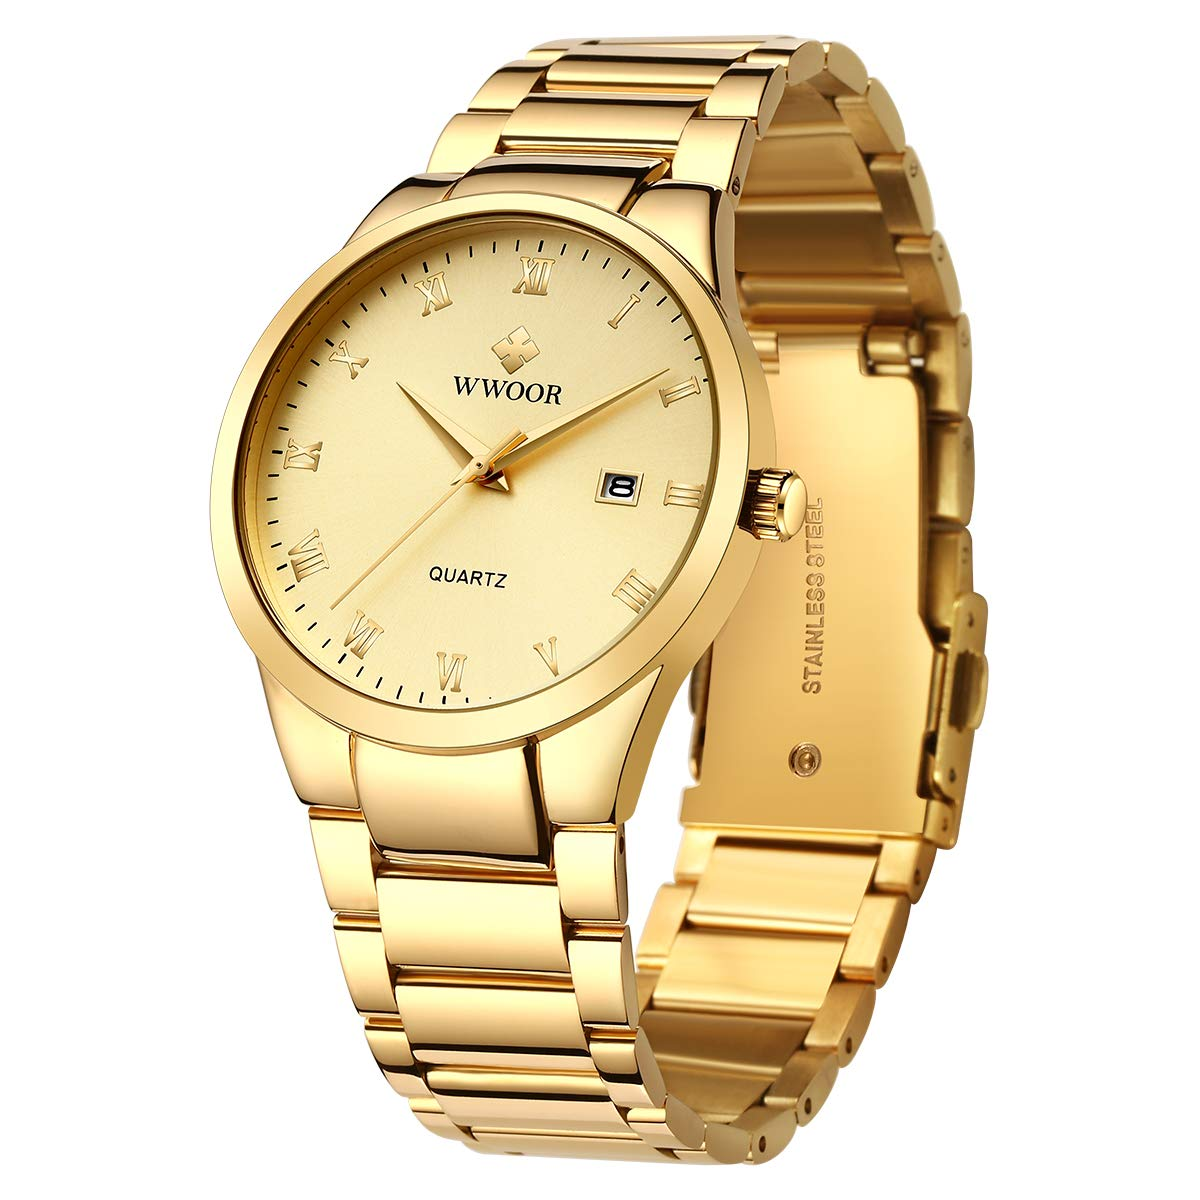 WWOOR Men s Watch Analog Quartz Waterproof Watch with Date Fashion Business Stainless Steel Casual Gift Wrist Watches